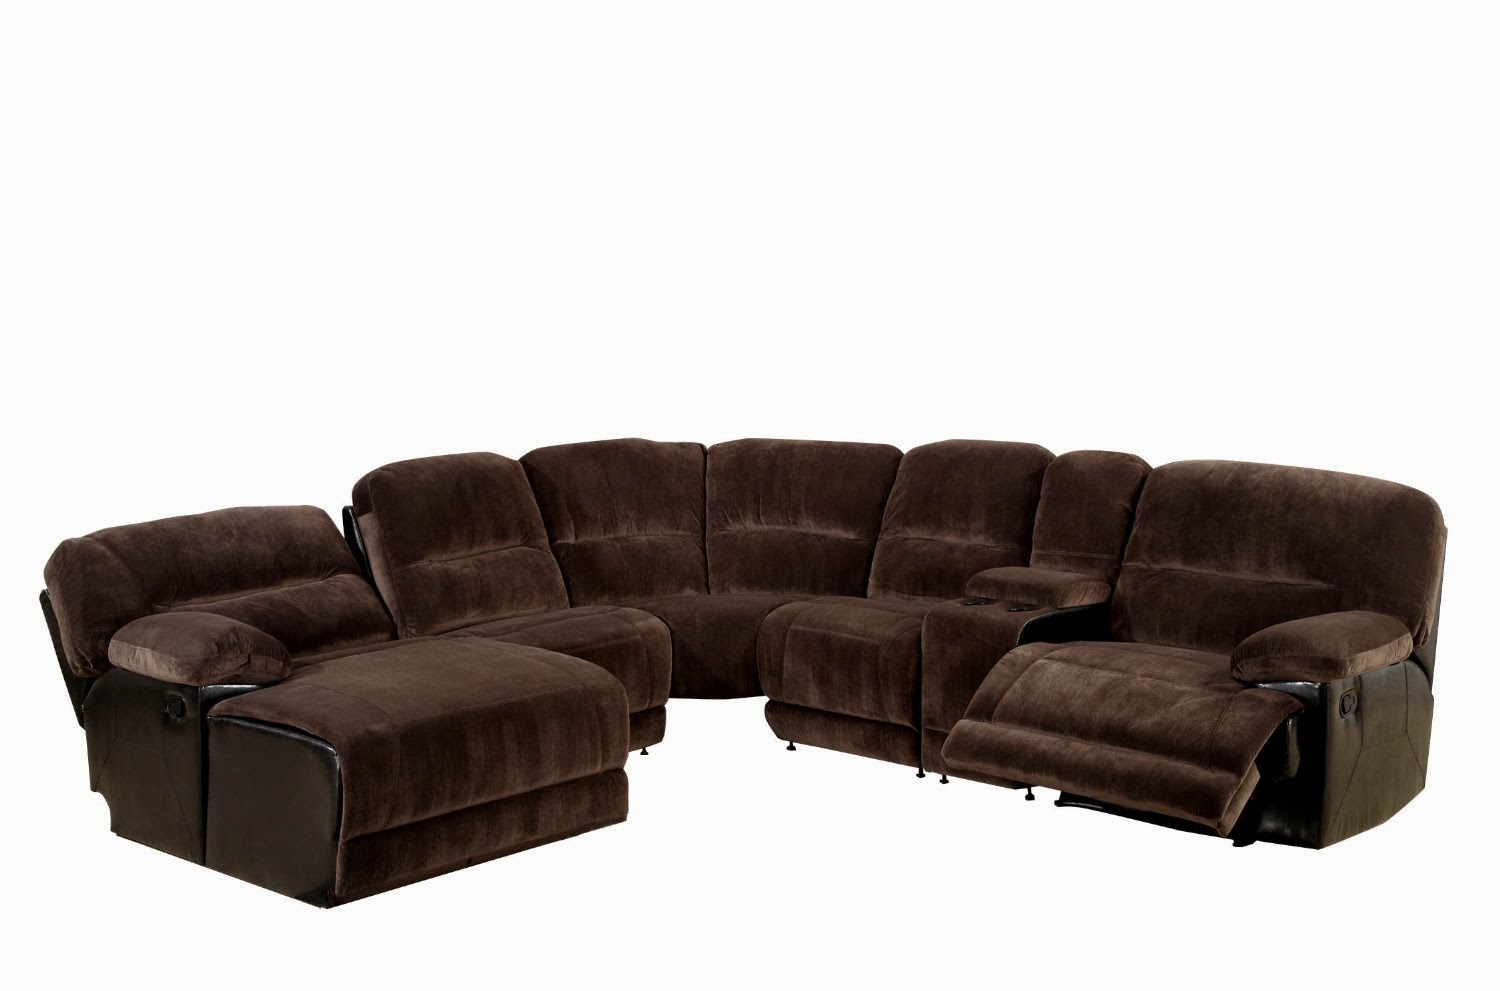 Reclining sofas reclining sectional sofa for Sectional couch